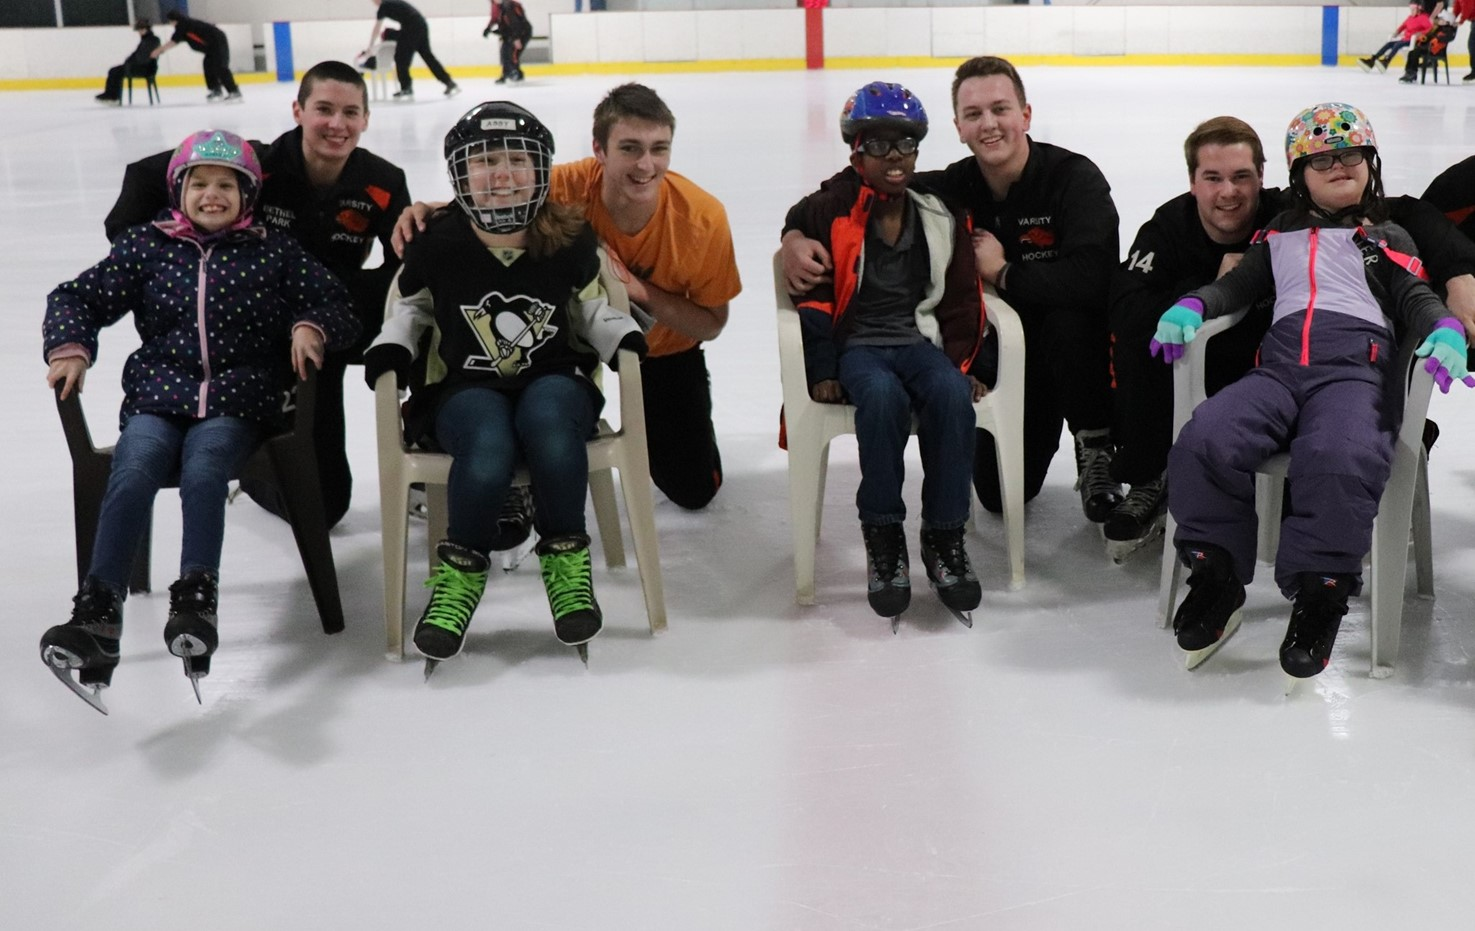 BPHS Hockey Team Skate With Special Friends